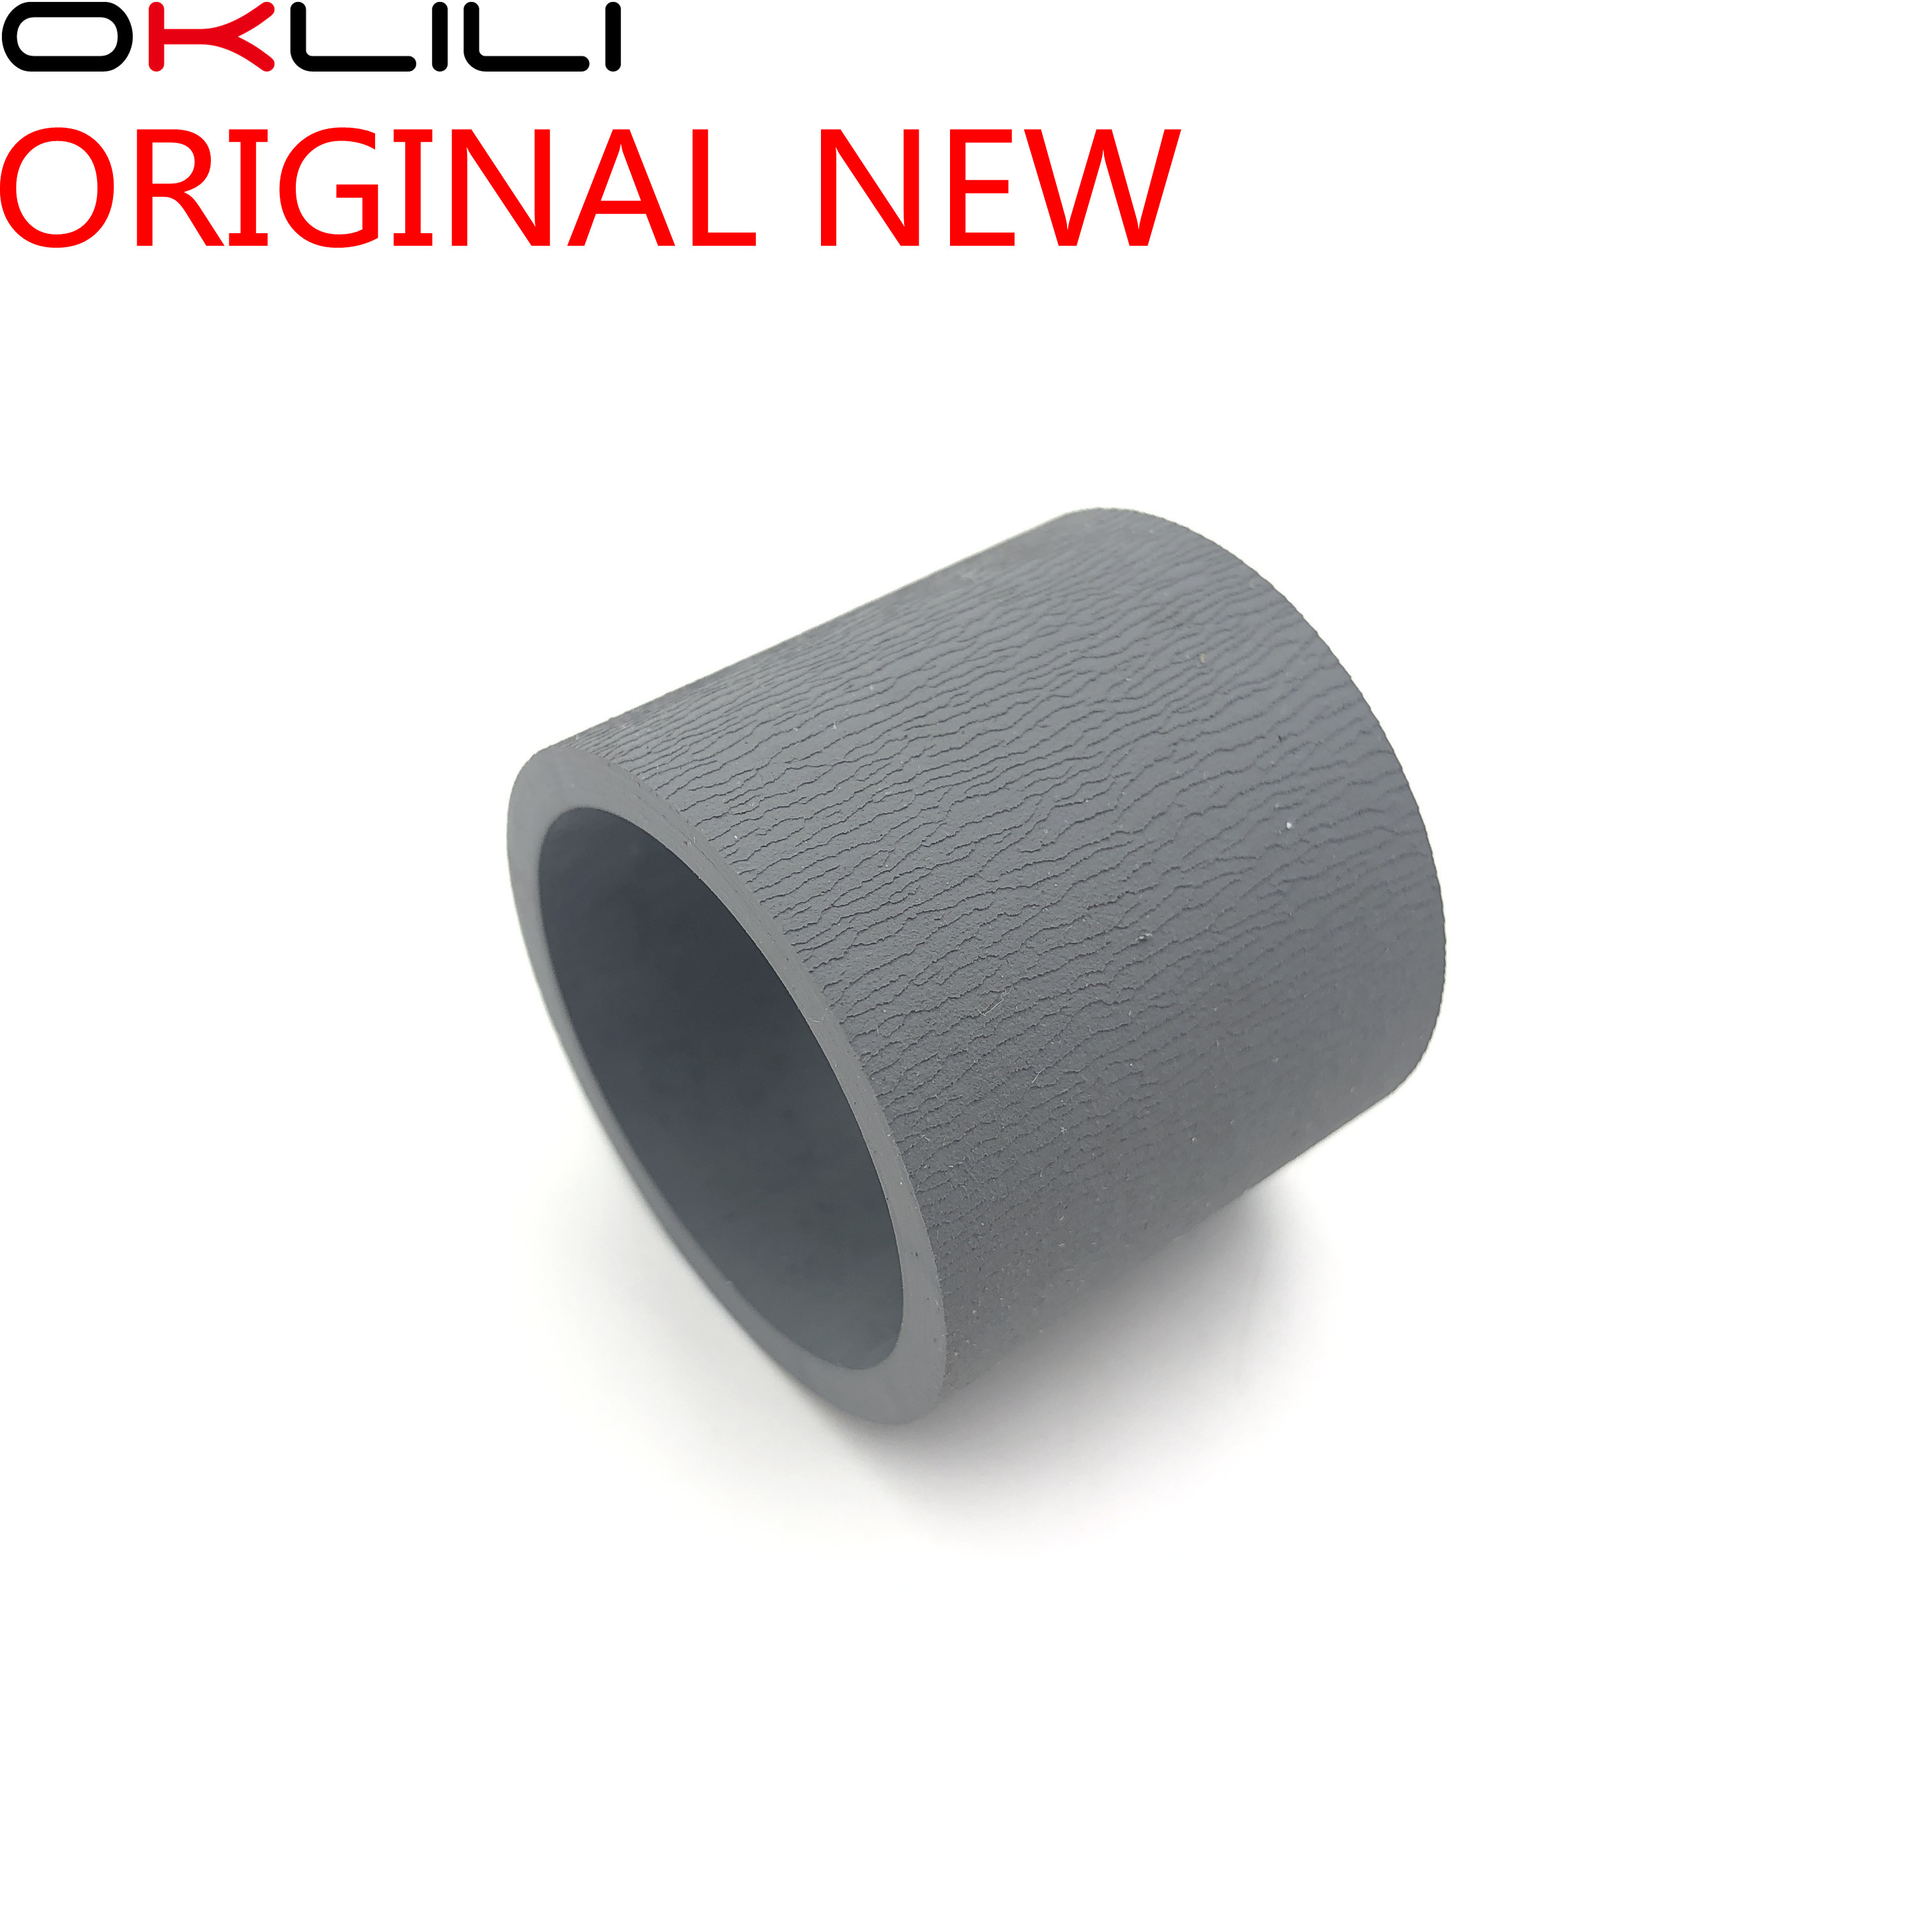 1 X JC73-00265A JC97-03062A Pickup Roller for Samsung ML2850 ML2851 ML2855 SCX4824 SCX4826 SCX4828 for <font><b>Xerox</b></font> 3150 3210 3220 <font><b>3250</b></font> image